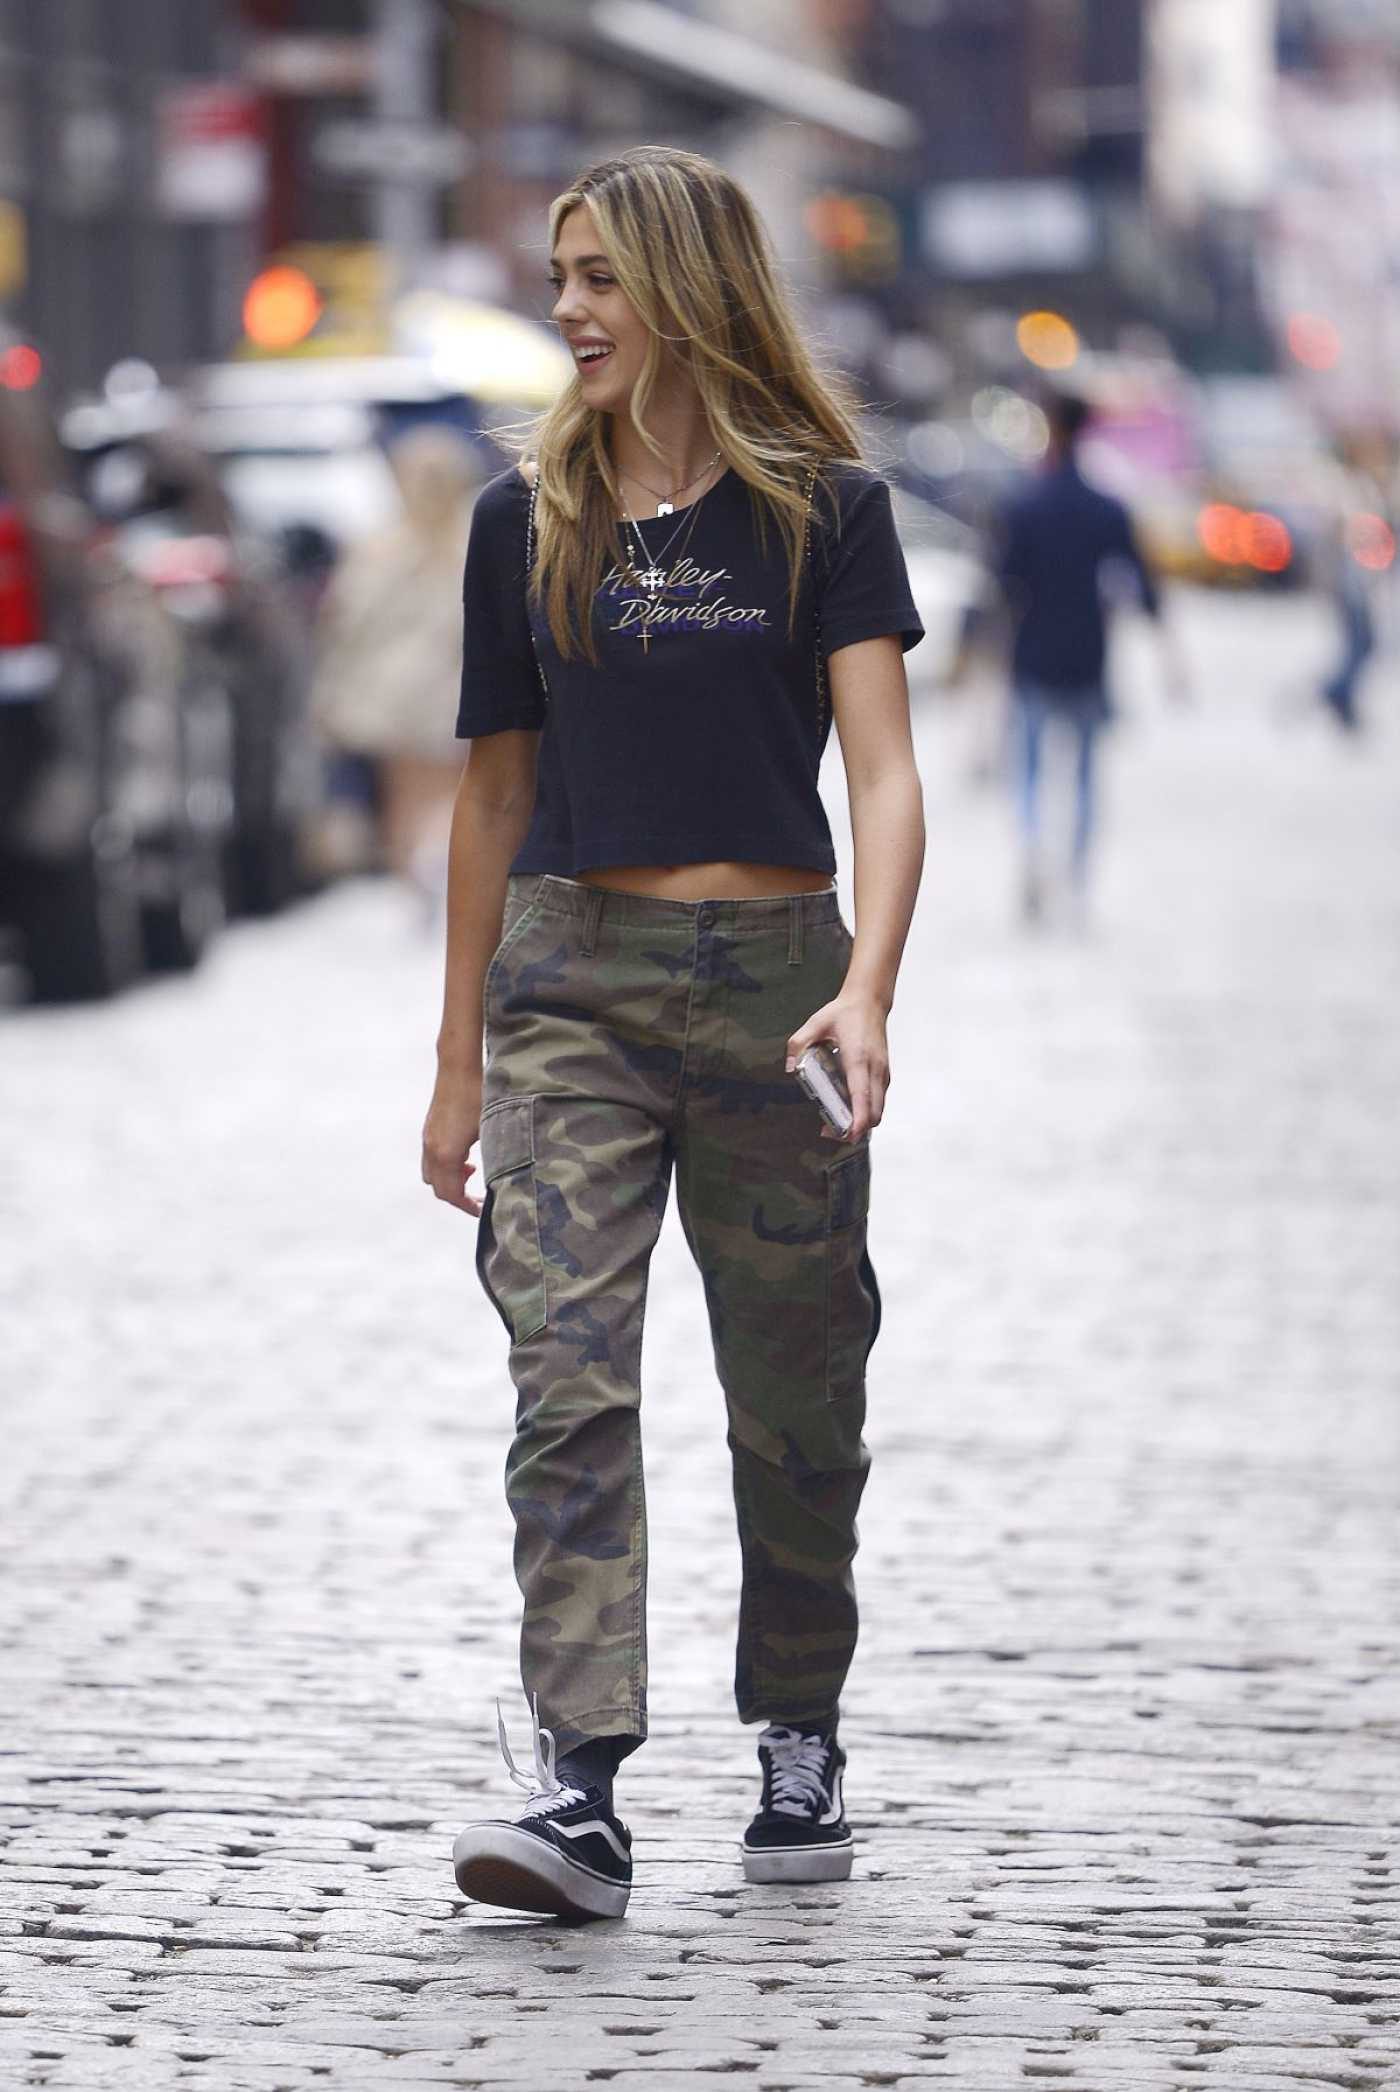 Sistine Stallone in a Camo Pants Was Seen Out in New York 09/08/2019